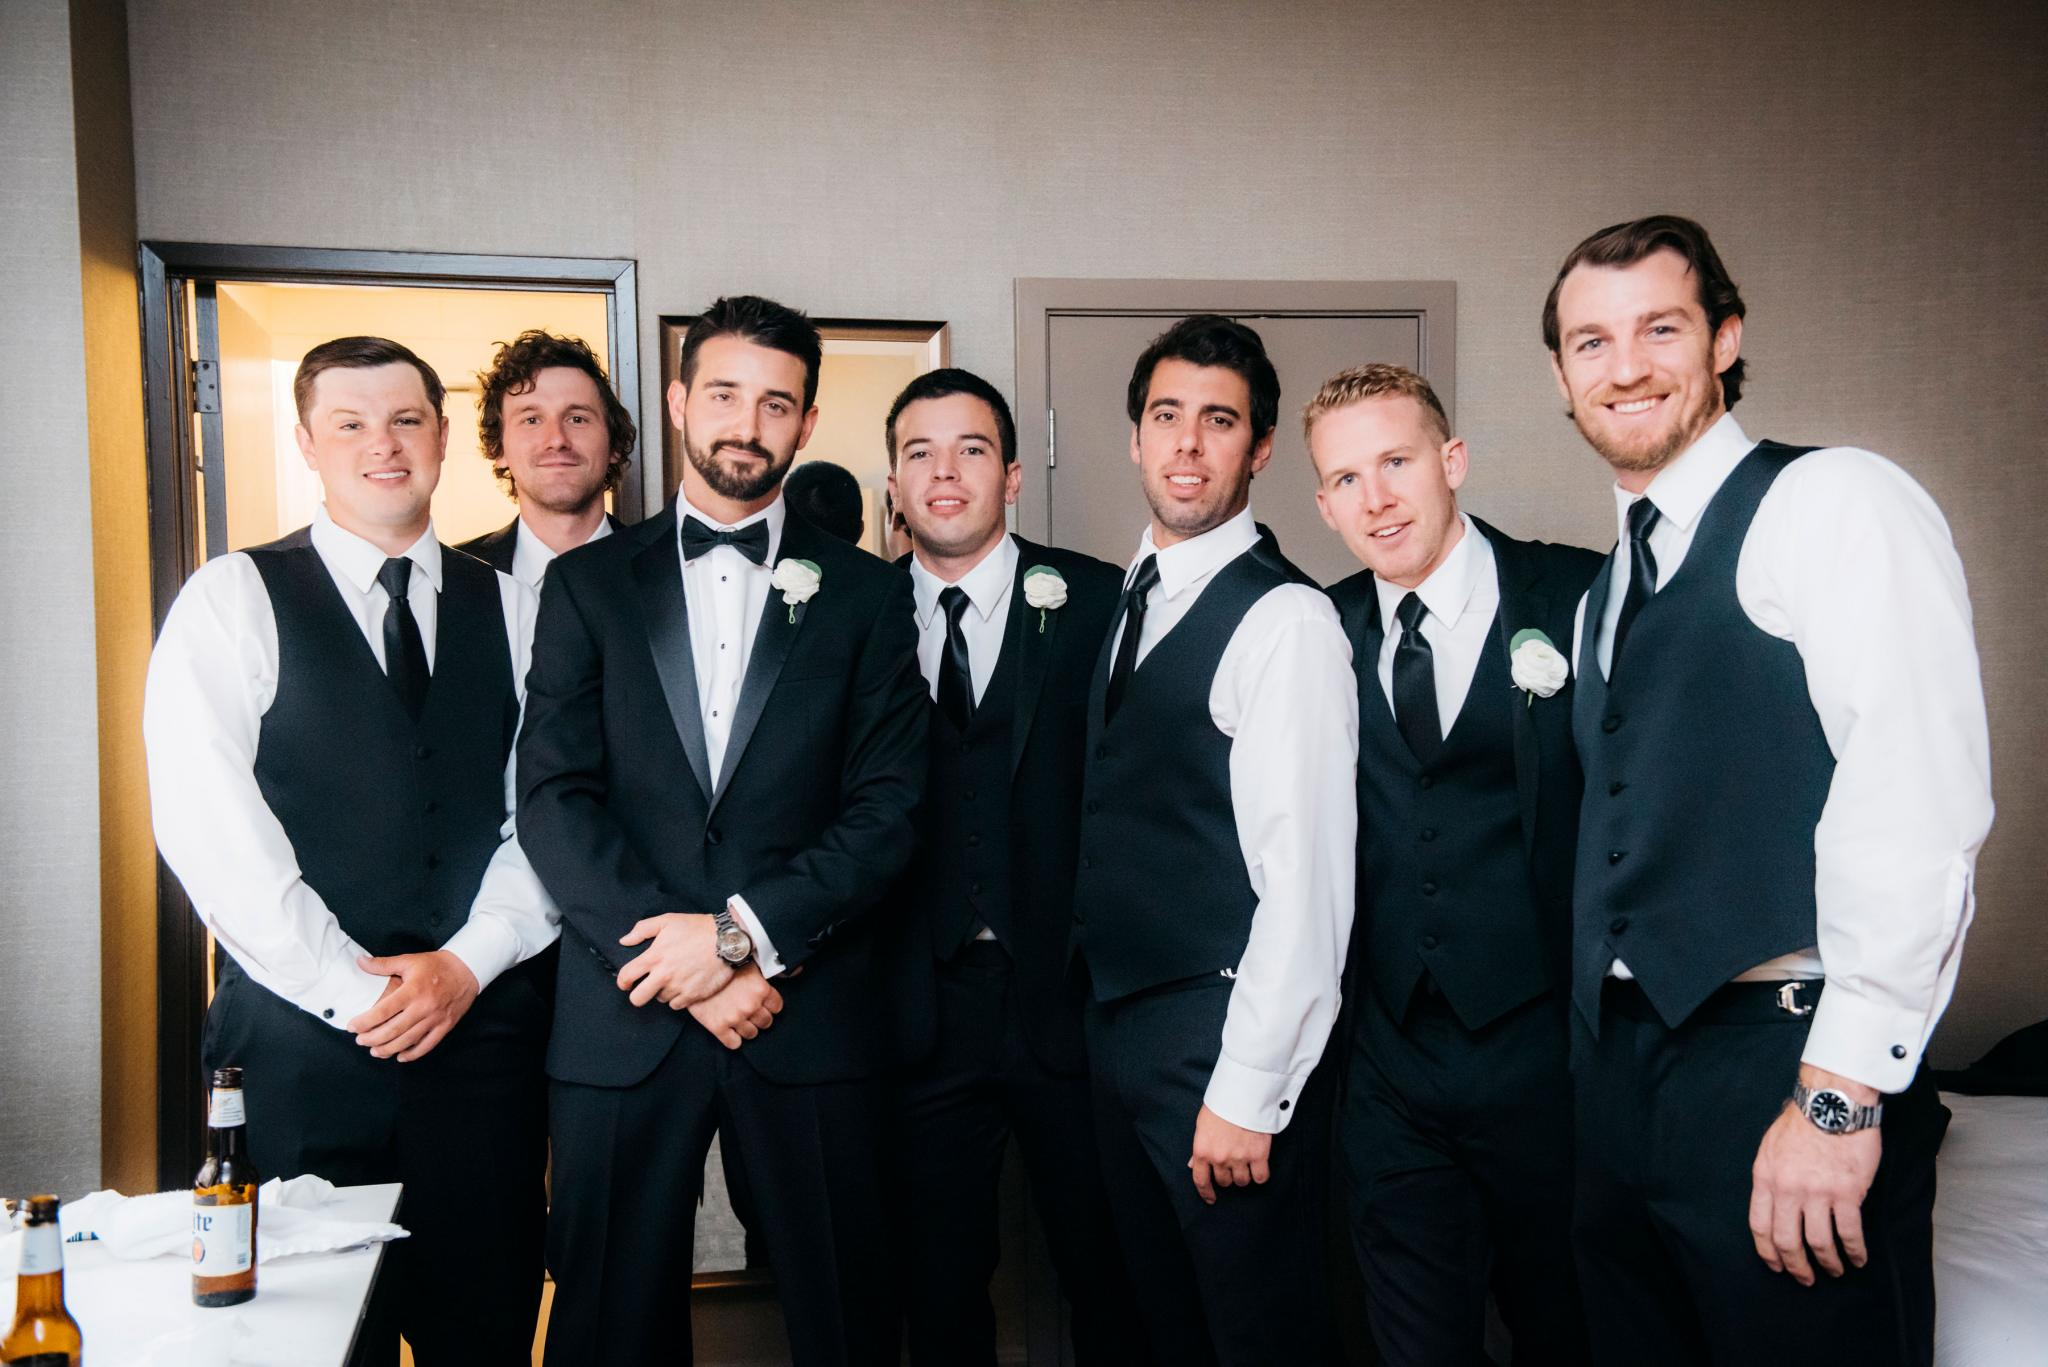 annie tommy venue SIX10 chicago, il wedding groom and groomsmen getting ready